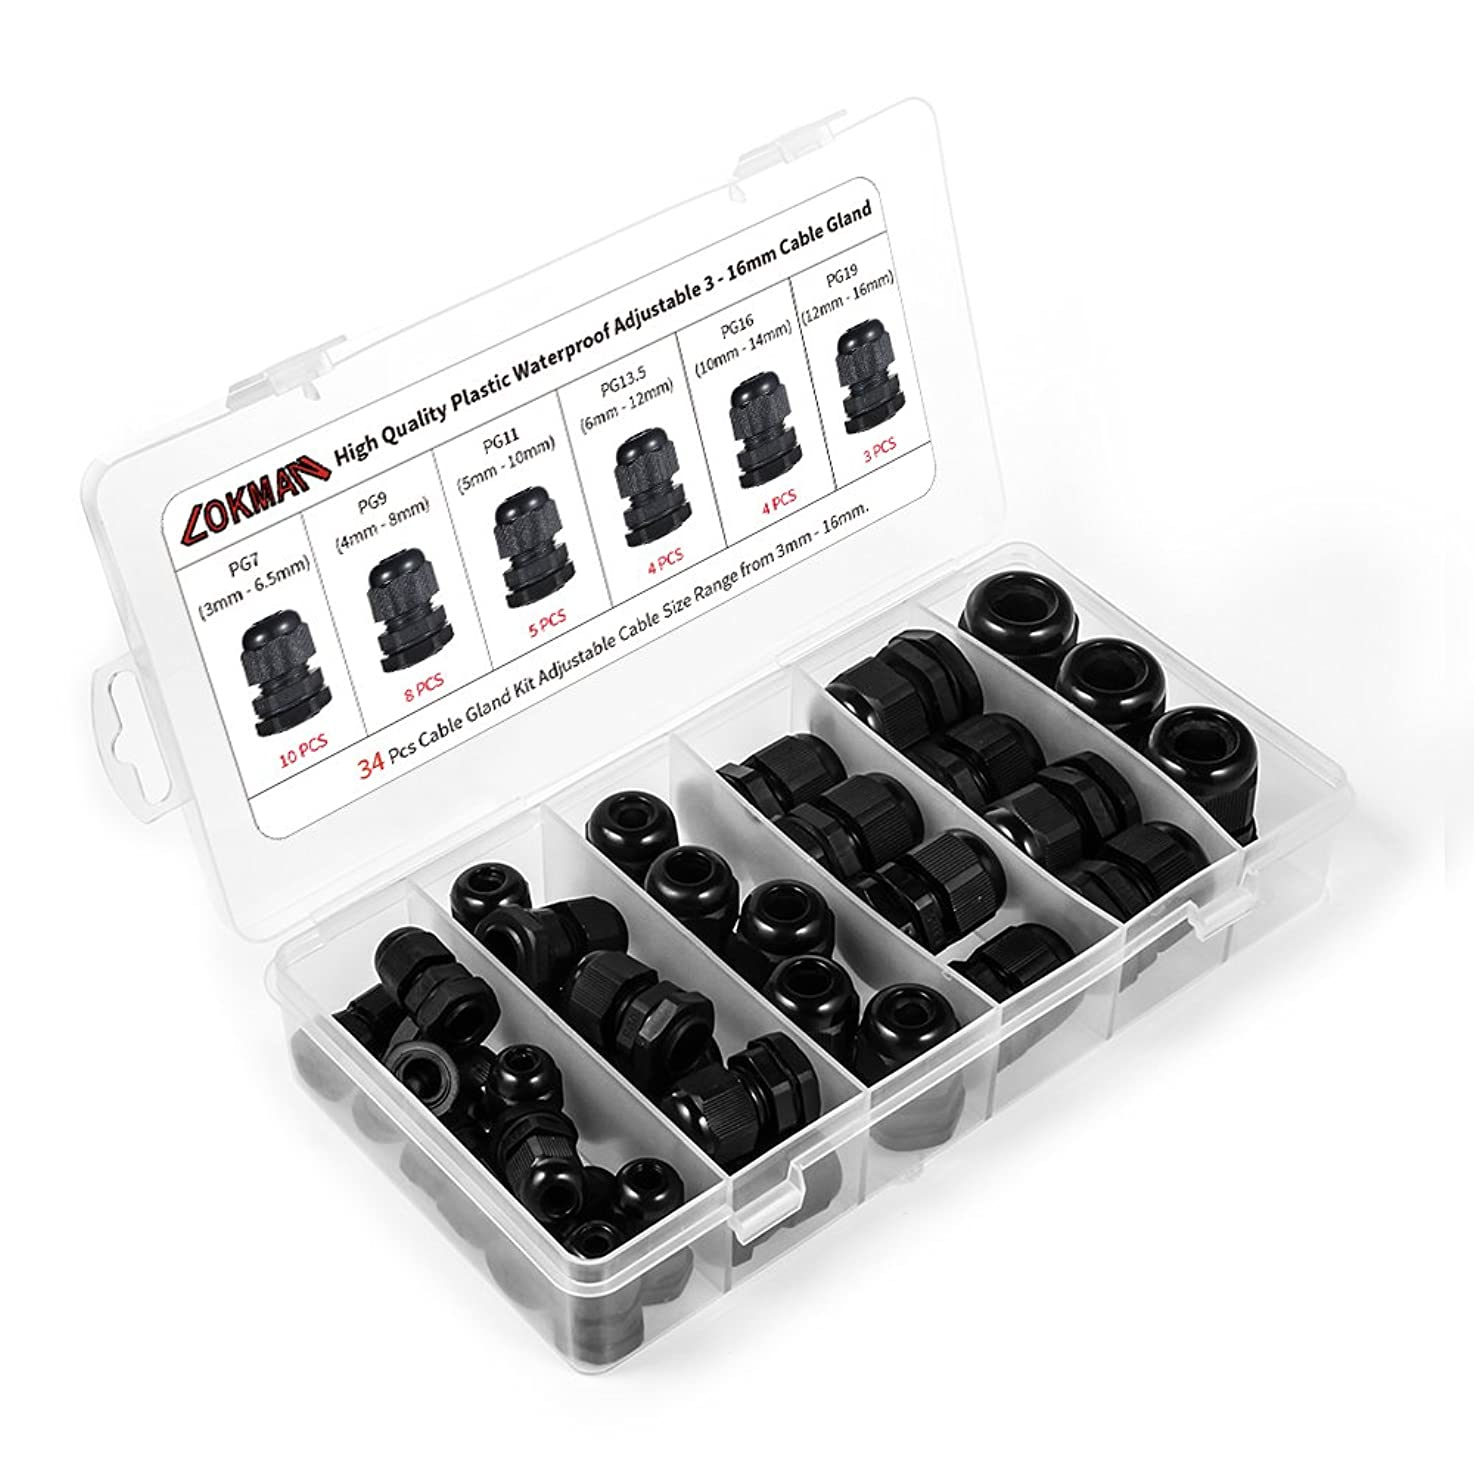 Cable Gland -LOKMAN 34 Pack Plastic Waterproof Adjustable 3-16mm Cable Connectors Cable Gland Joints With Gaskets, PG7, PG9, PG11, PG13.5, PG16,PG19 With Durable PP Storage Case (Cable gland kit) lbkqismghvgdh8